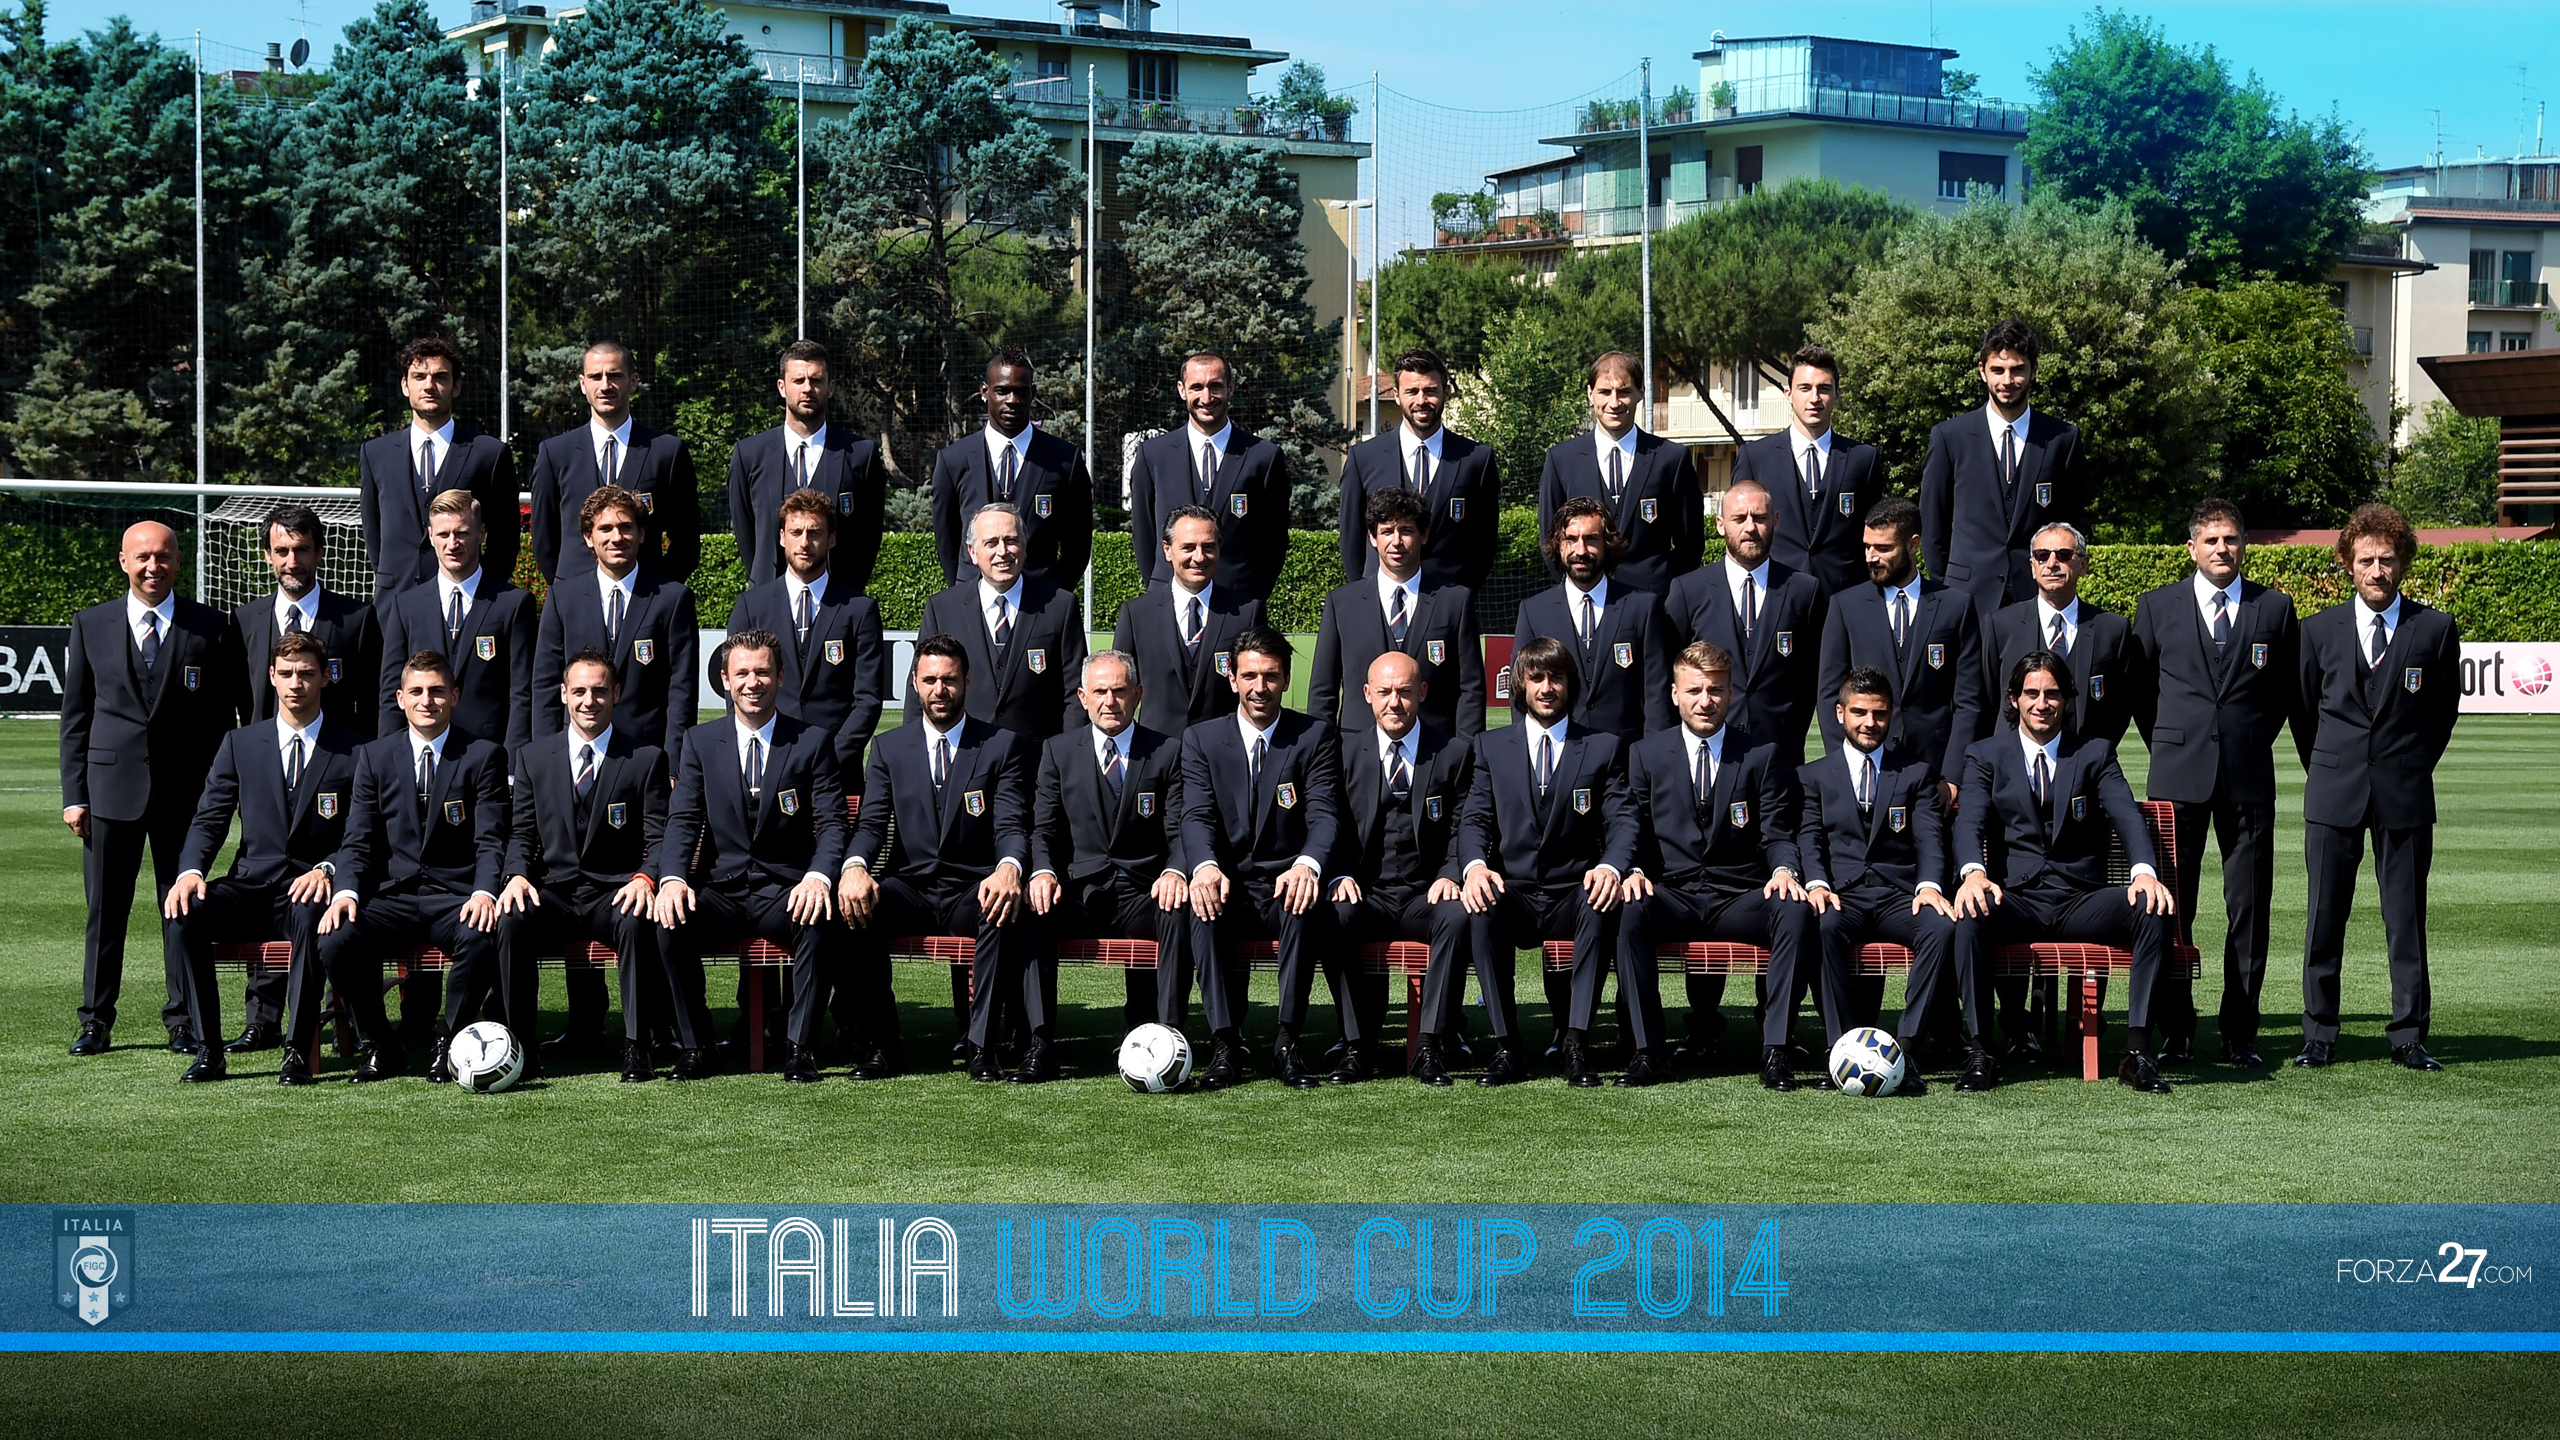 italy2014_suits_wall